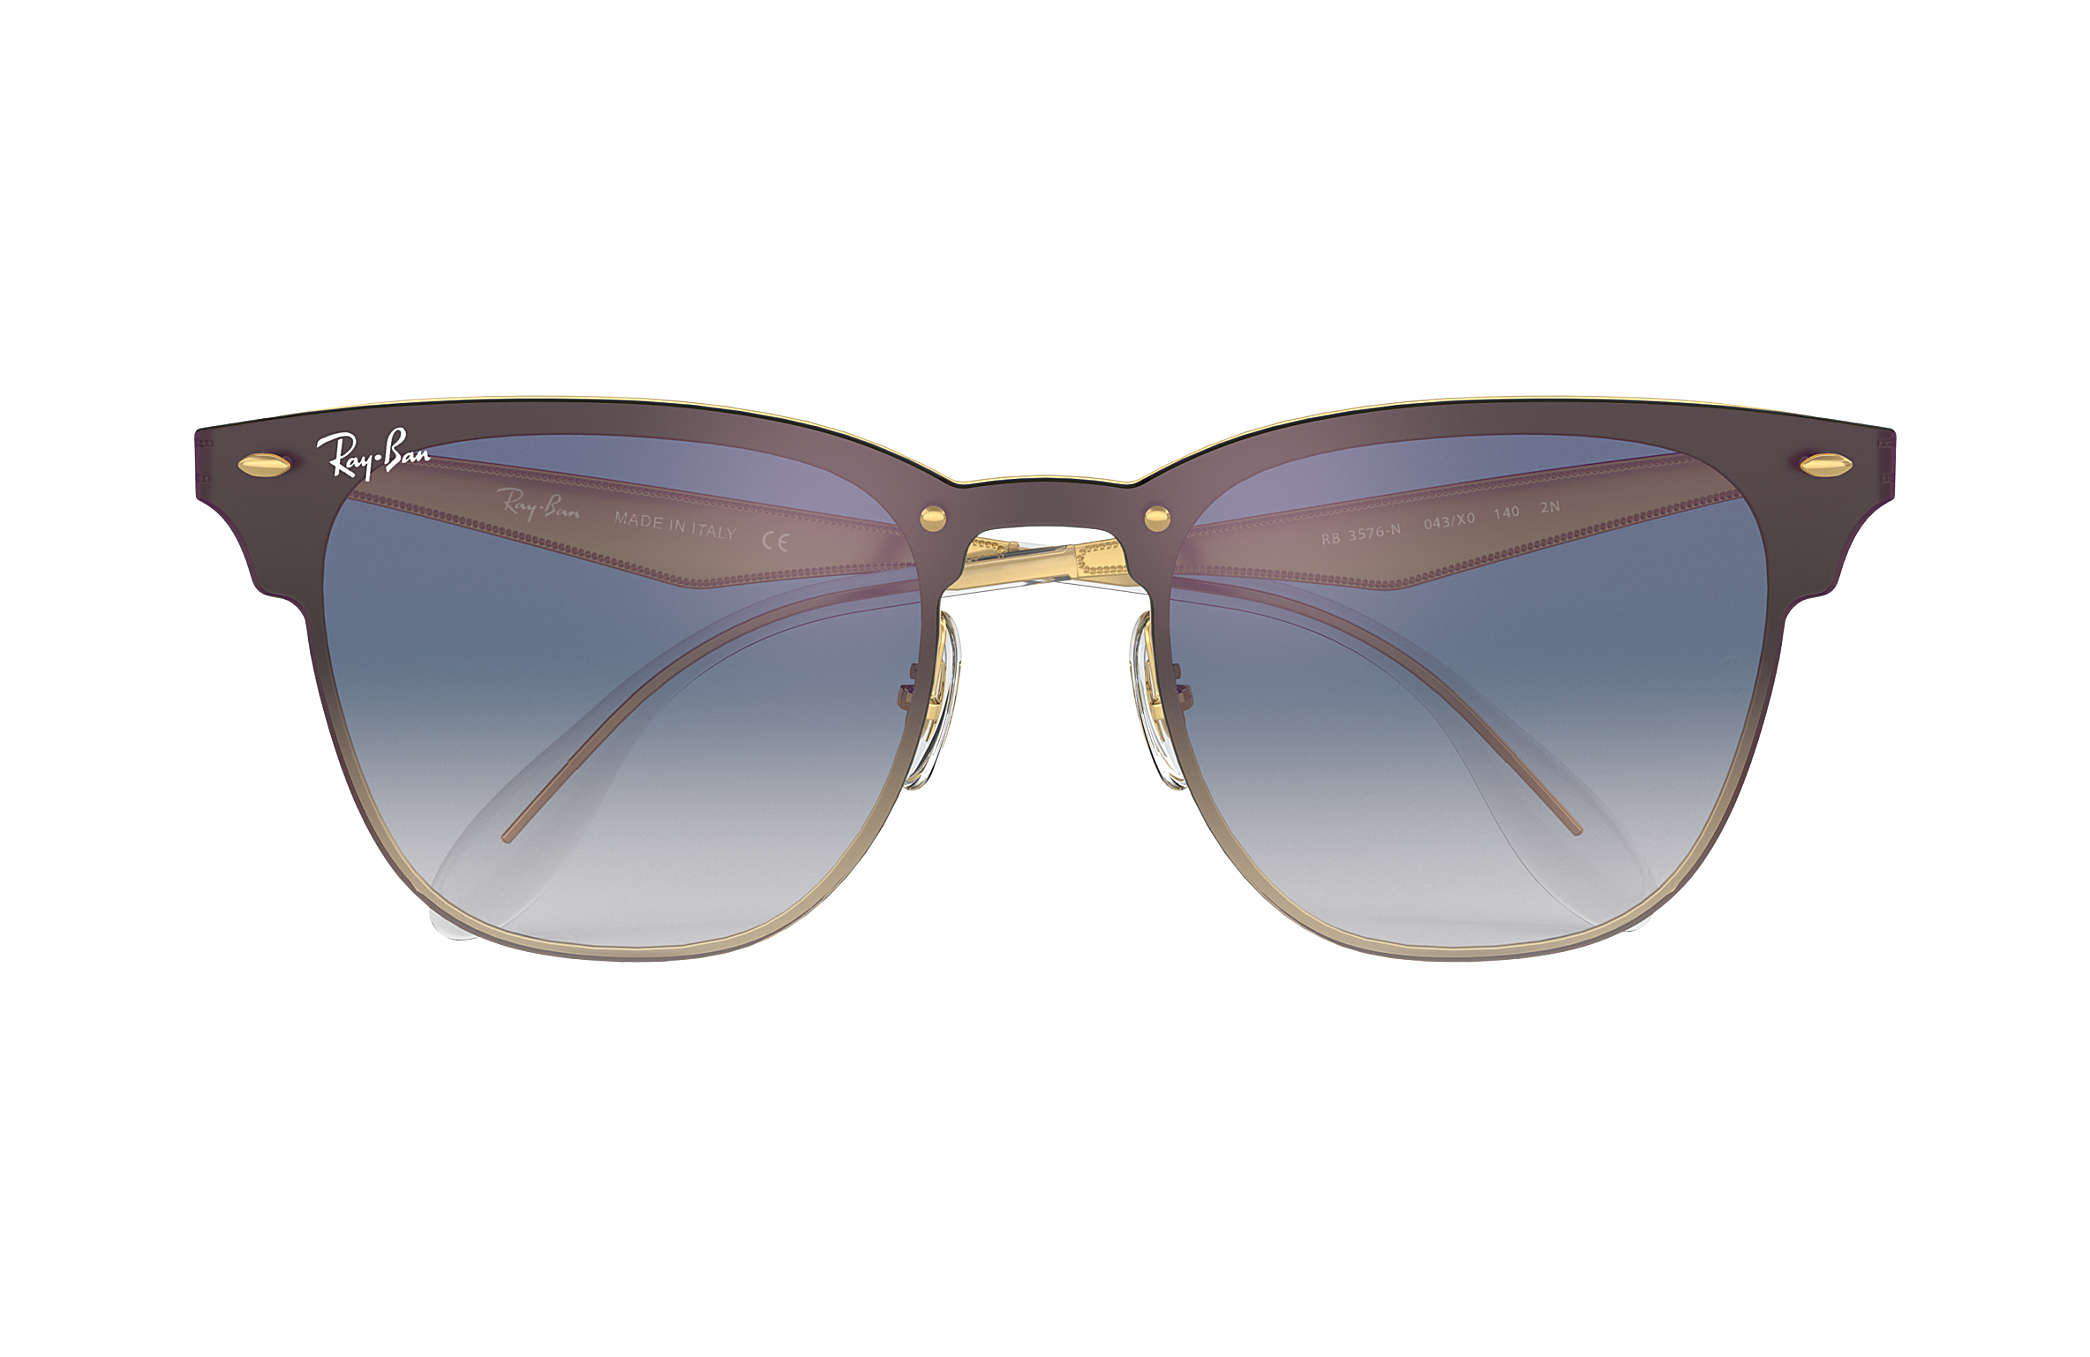 Blaze Clubmaster Ray-Ban RB3576N Or - Steel - Verres Bleu ... 93462d475ab2